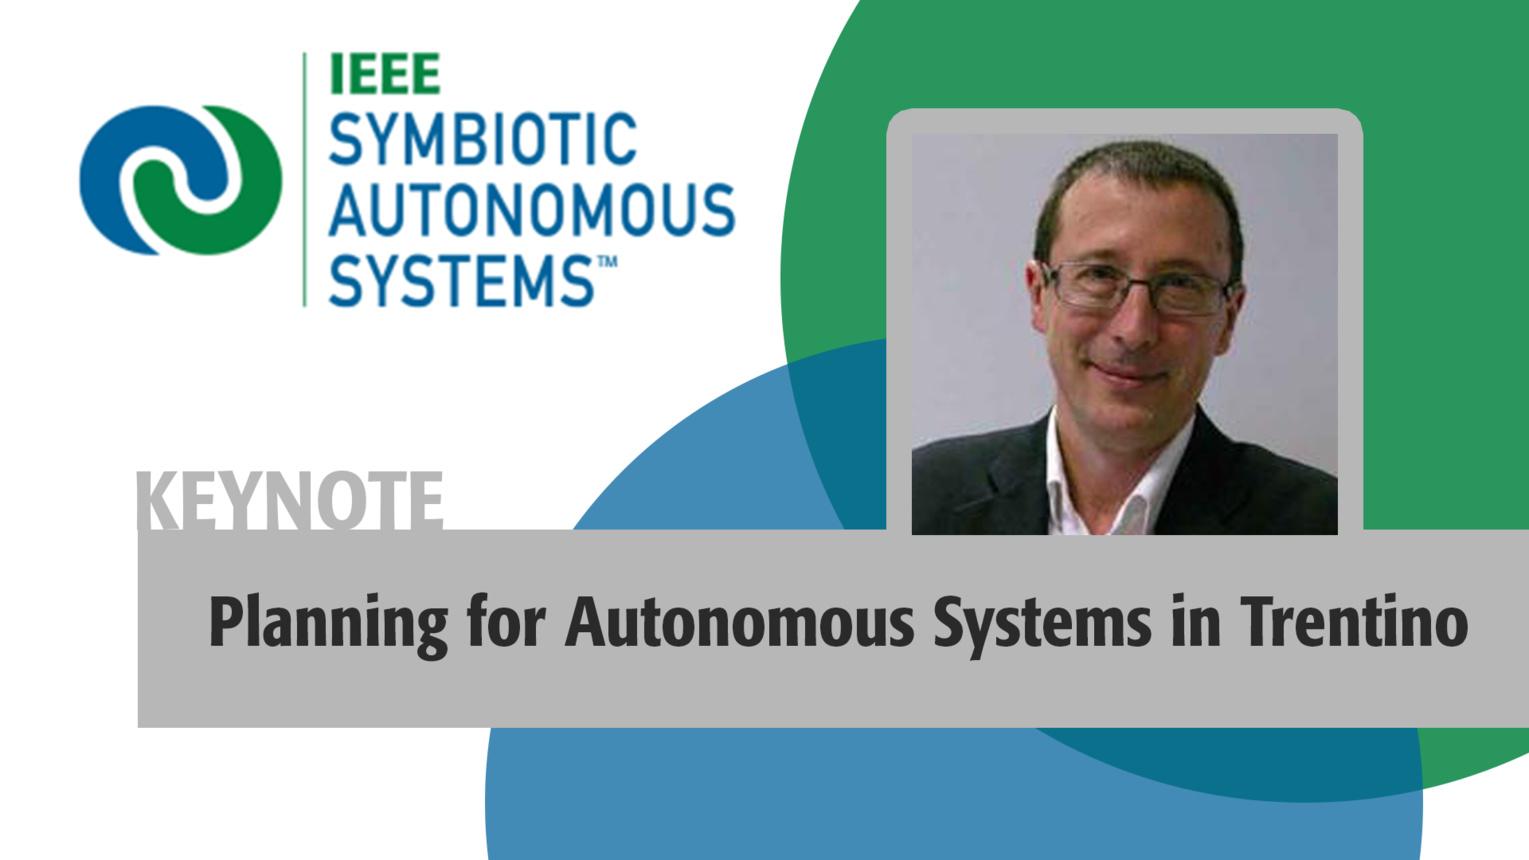 Keynote: Planning for Autonomous Systems in the Trentino Region - Paolo Traverso